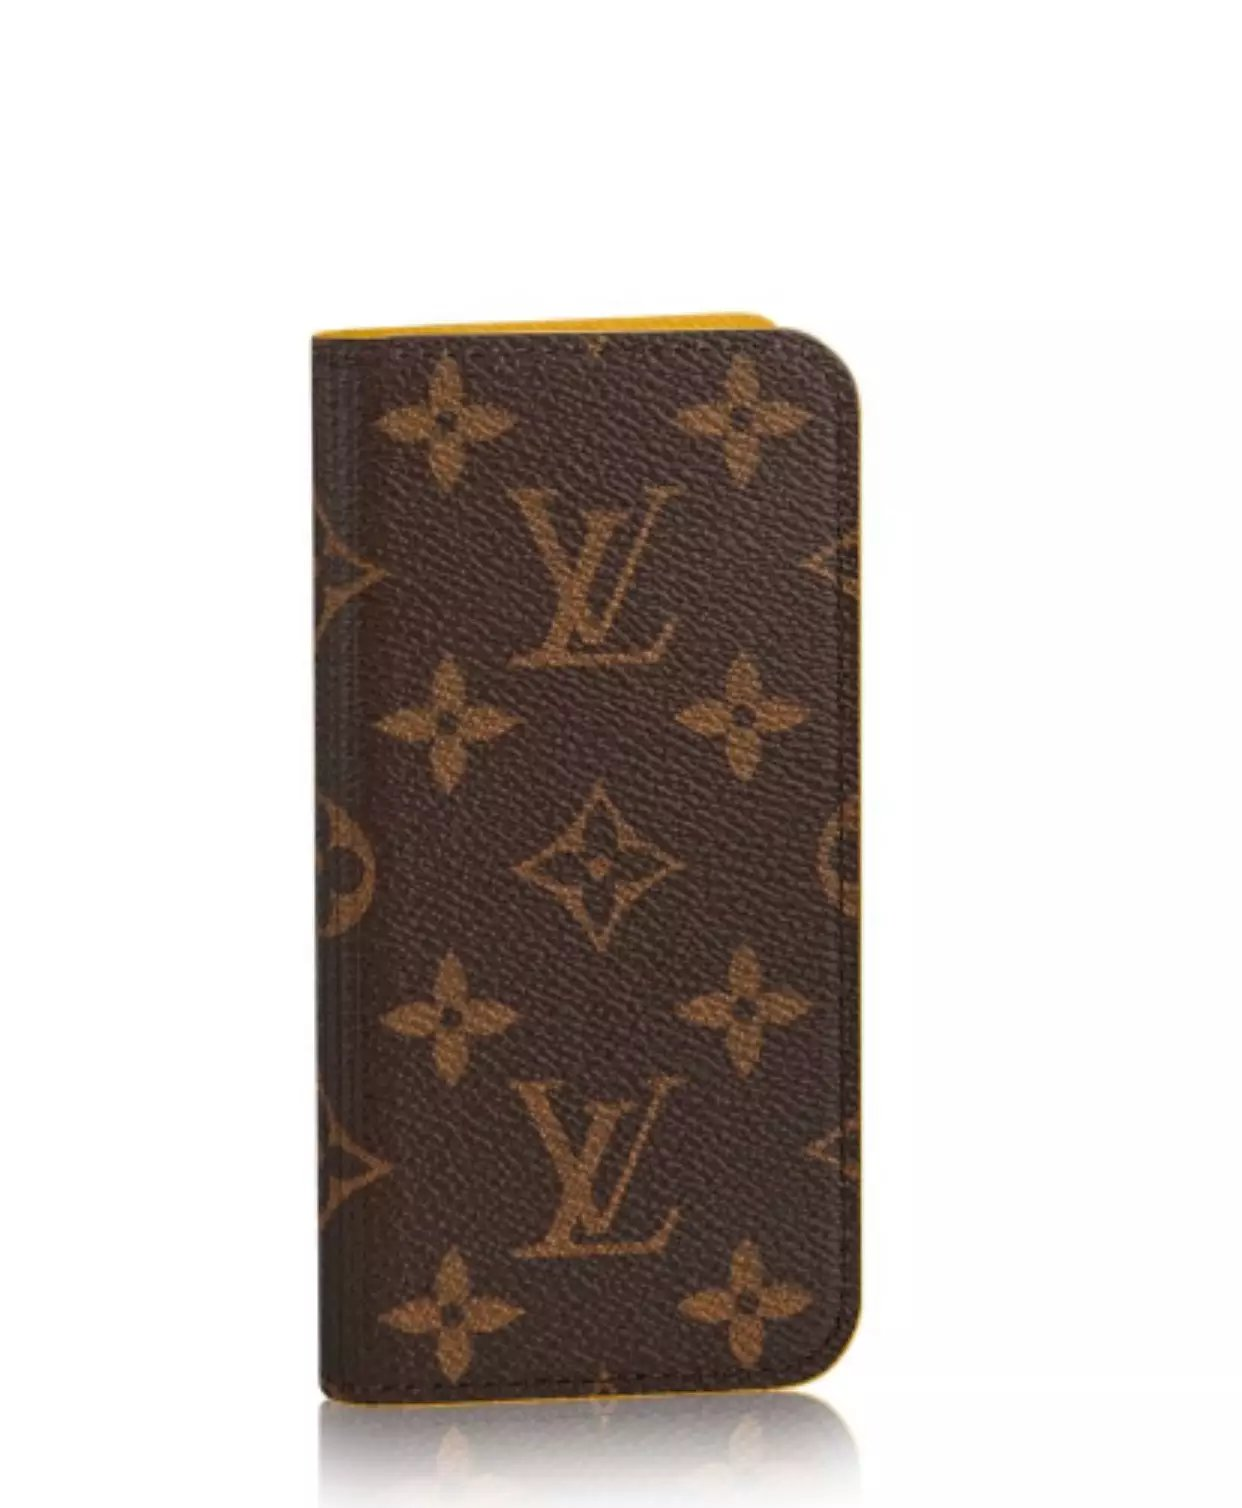 best cases iphone 8 Plus iphone 8 Plus case with cover Louis Vuitton iphone 8 Plus case i8 Plus phone cases new cell phone cases design a case for iPhone 8 Plus iphone 8 Plus full cover iPhone 8 Plus designer cases uk designer phone cases for iPhone 8 Plus